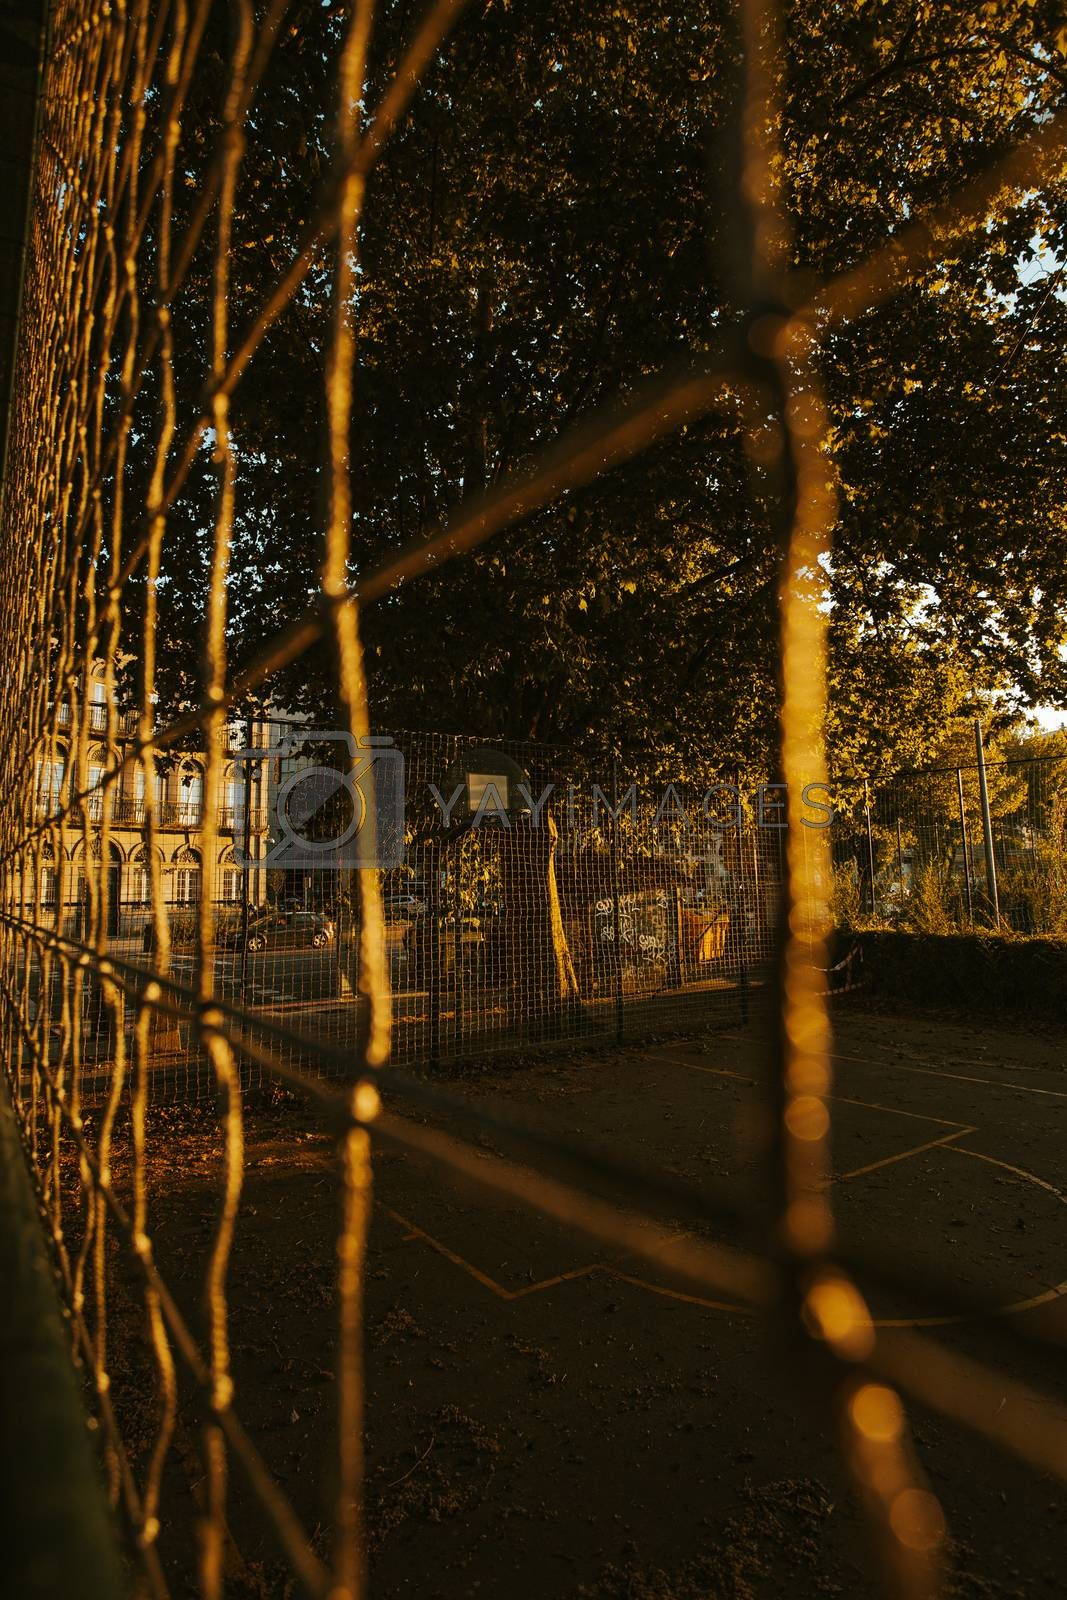 A close up of the basket court from the fence during a sunset